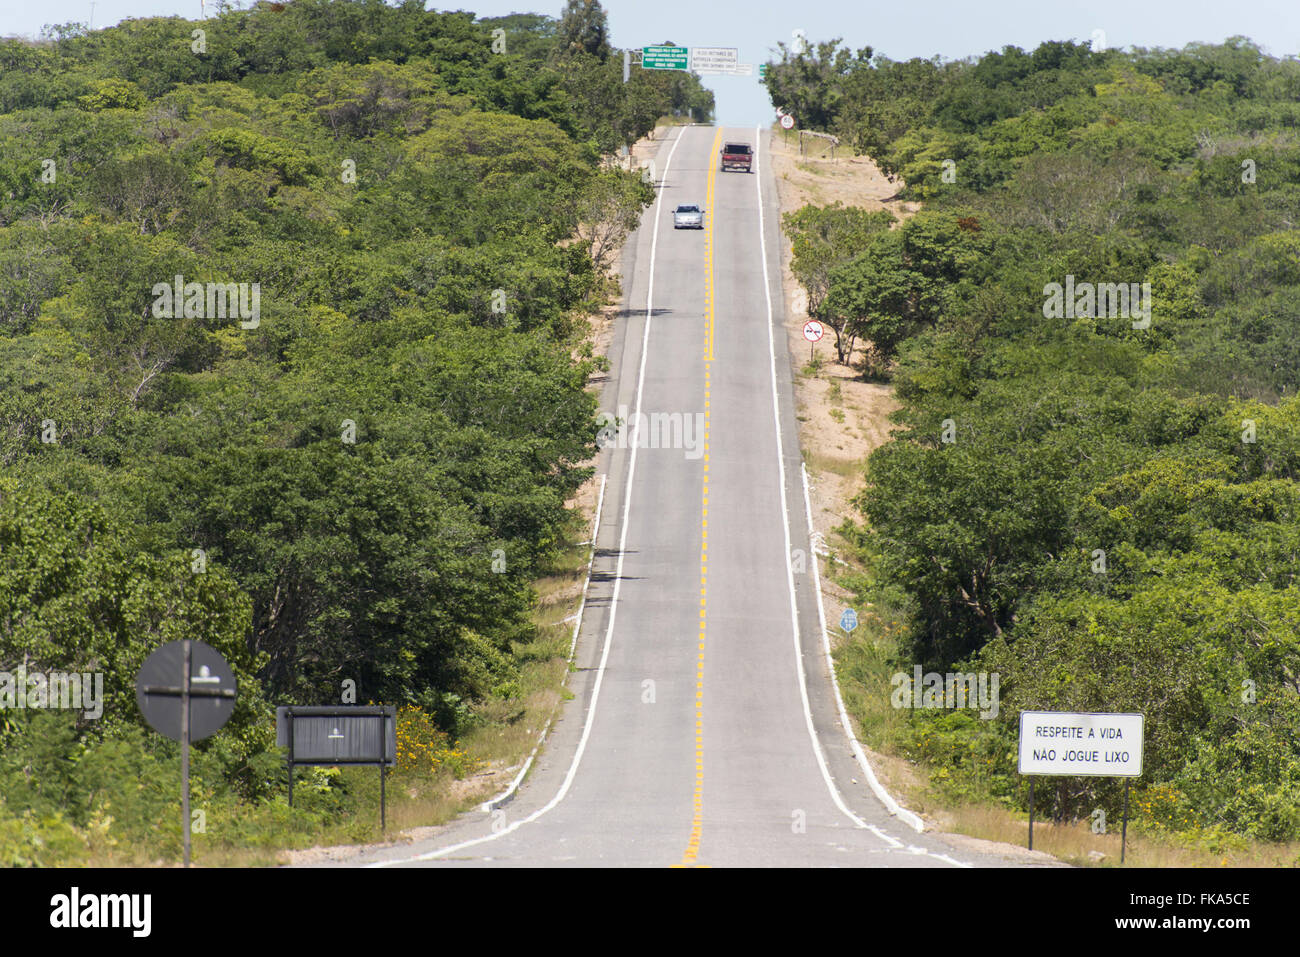 EC-060 state highway in the Araripe Stock Photo